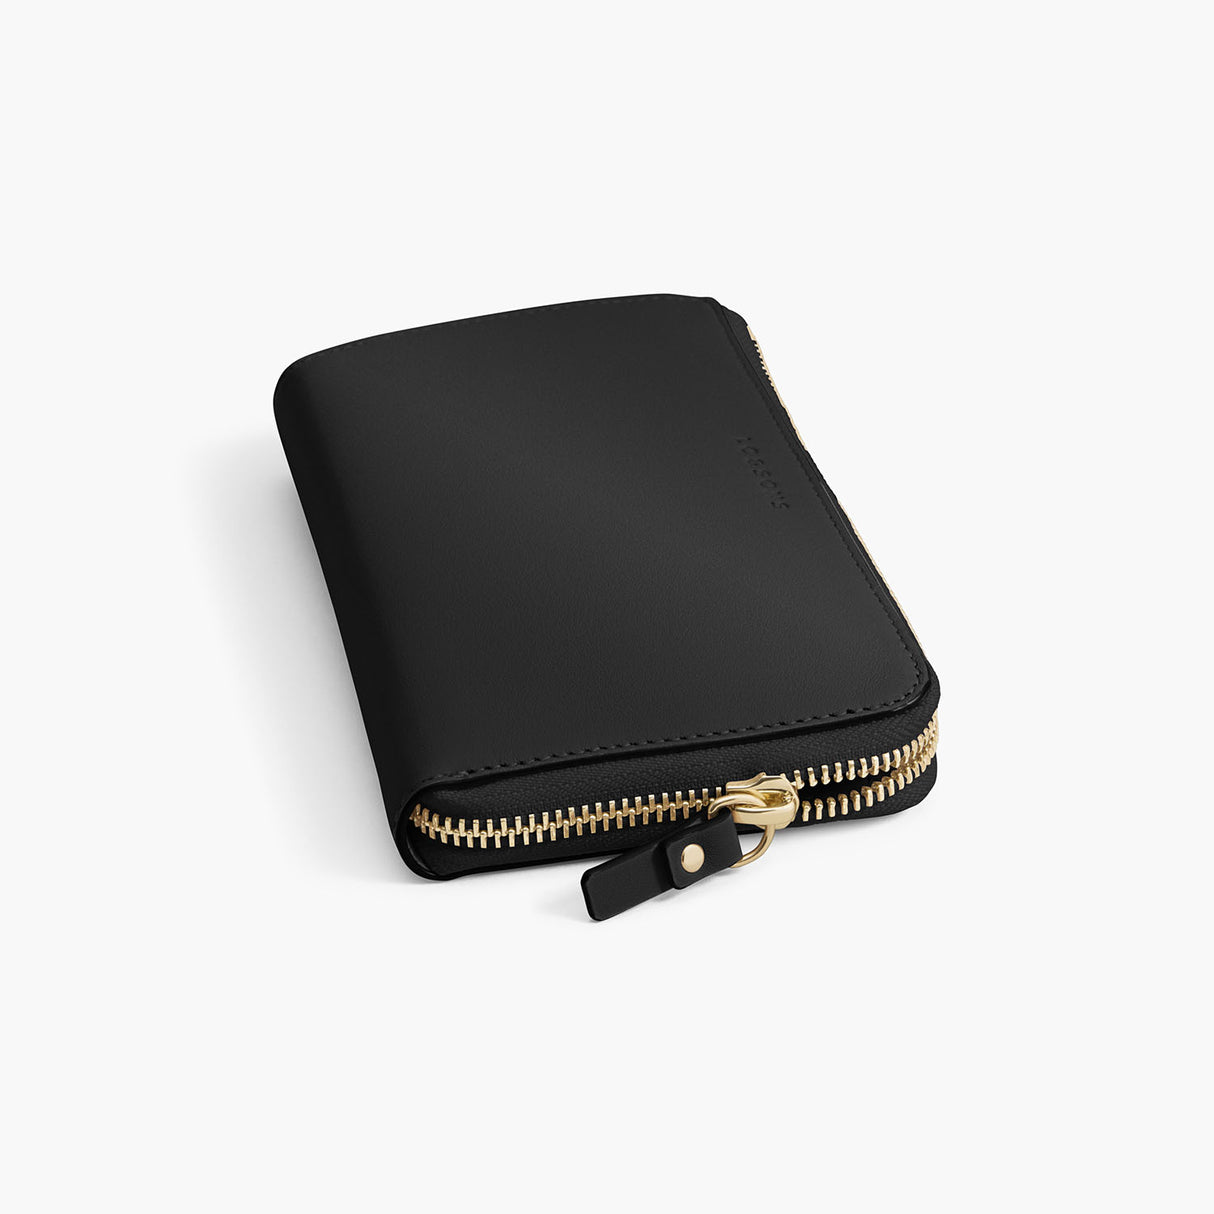 Zipper Detail - The Leather Wallet - Nappa Leather - Black / Gold / Grey - Small Accessory - Lo & Sons